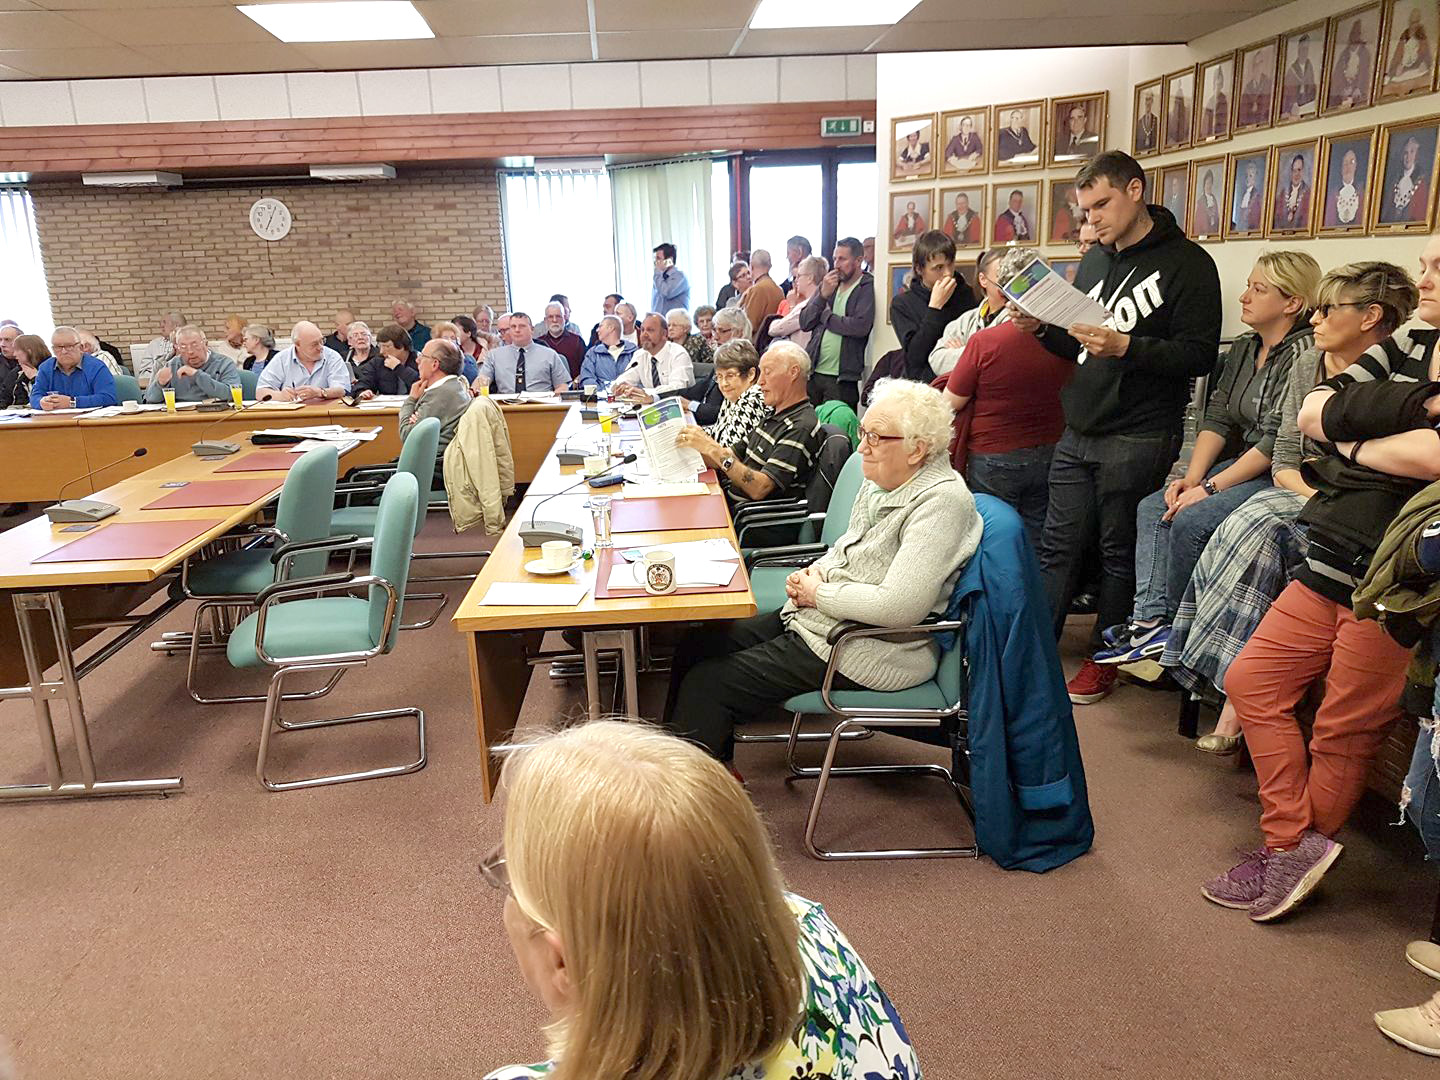 Public Pack Council Chamber in Opposition to Livin's Regeneration Scheme